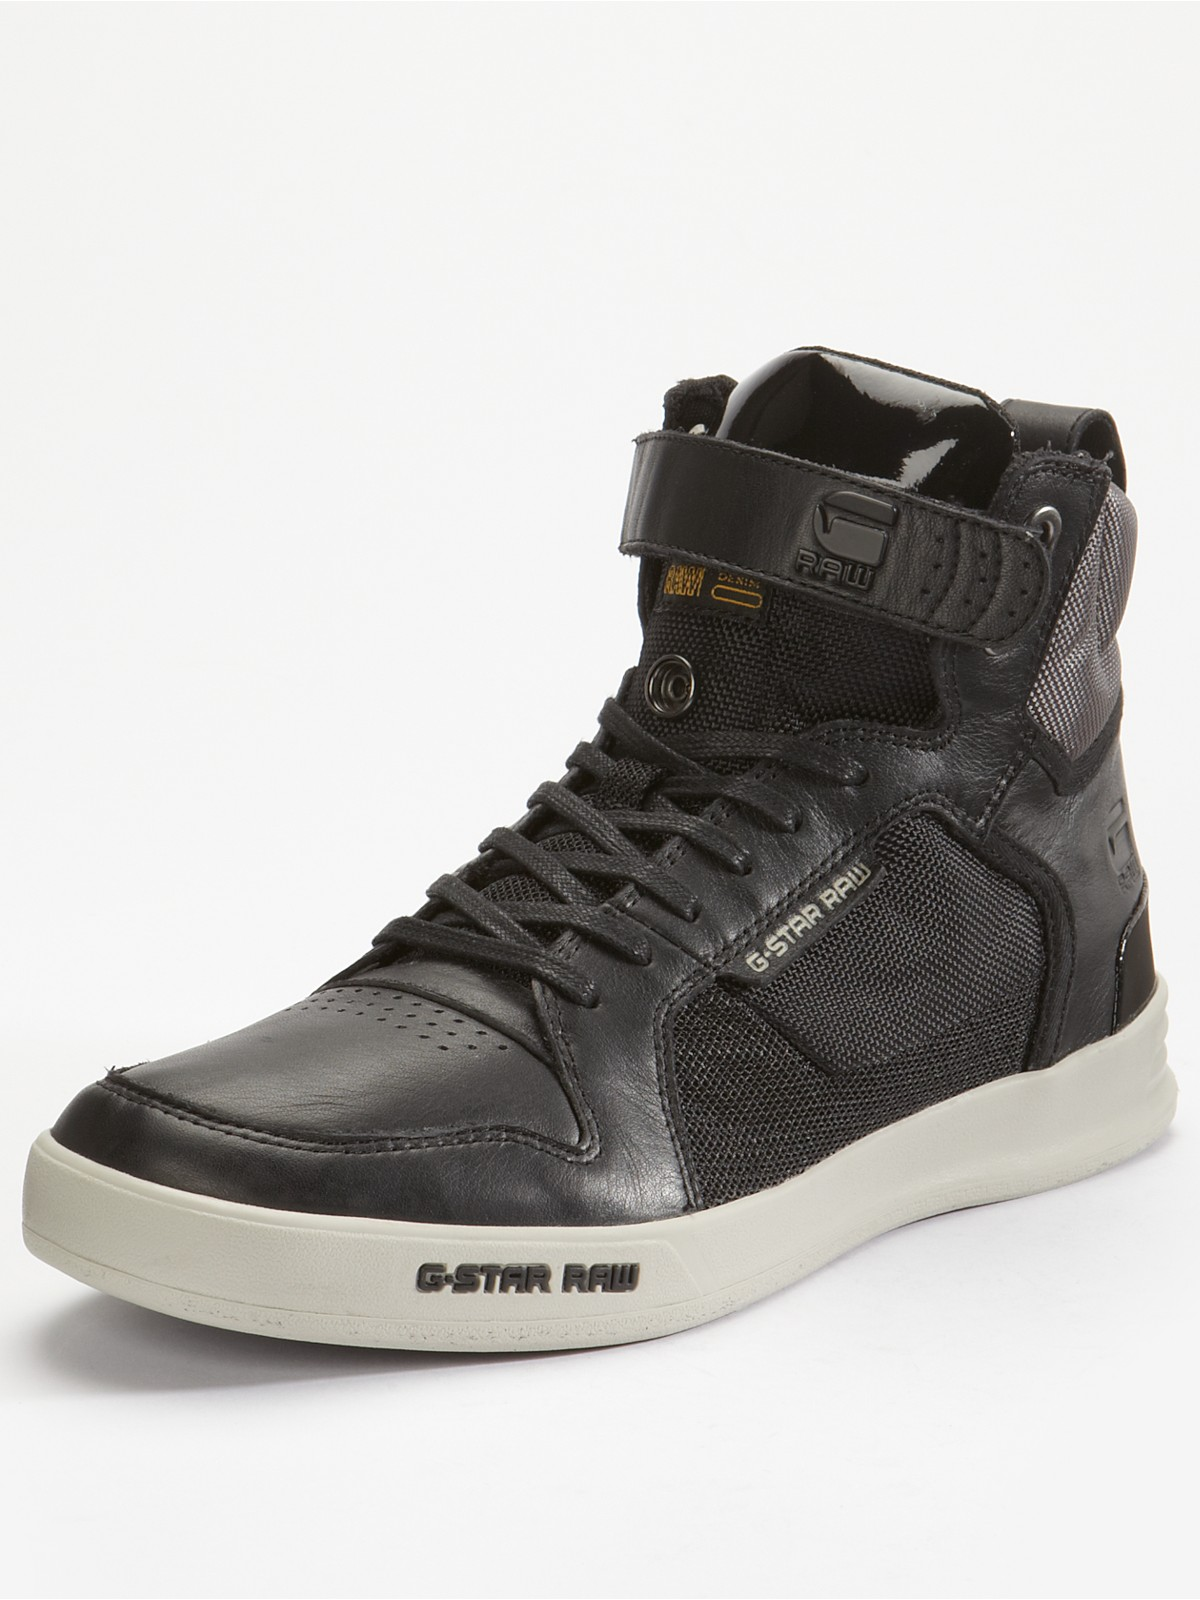 g star raw raw bullion hi top mens boots in black for men lyst. Black Bedroom Furniture Sets. Home Design Ideas